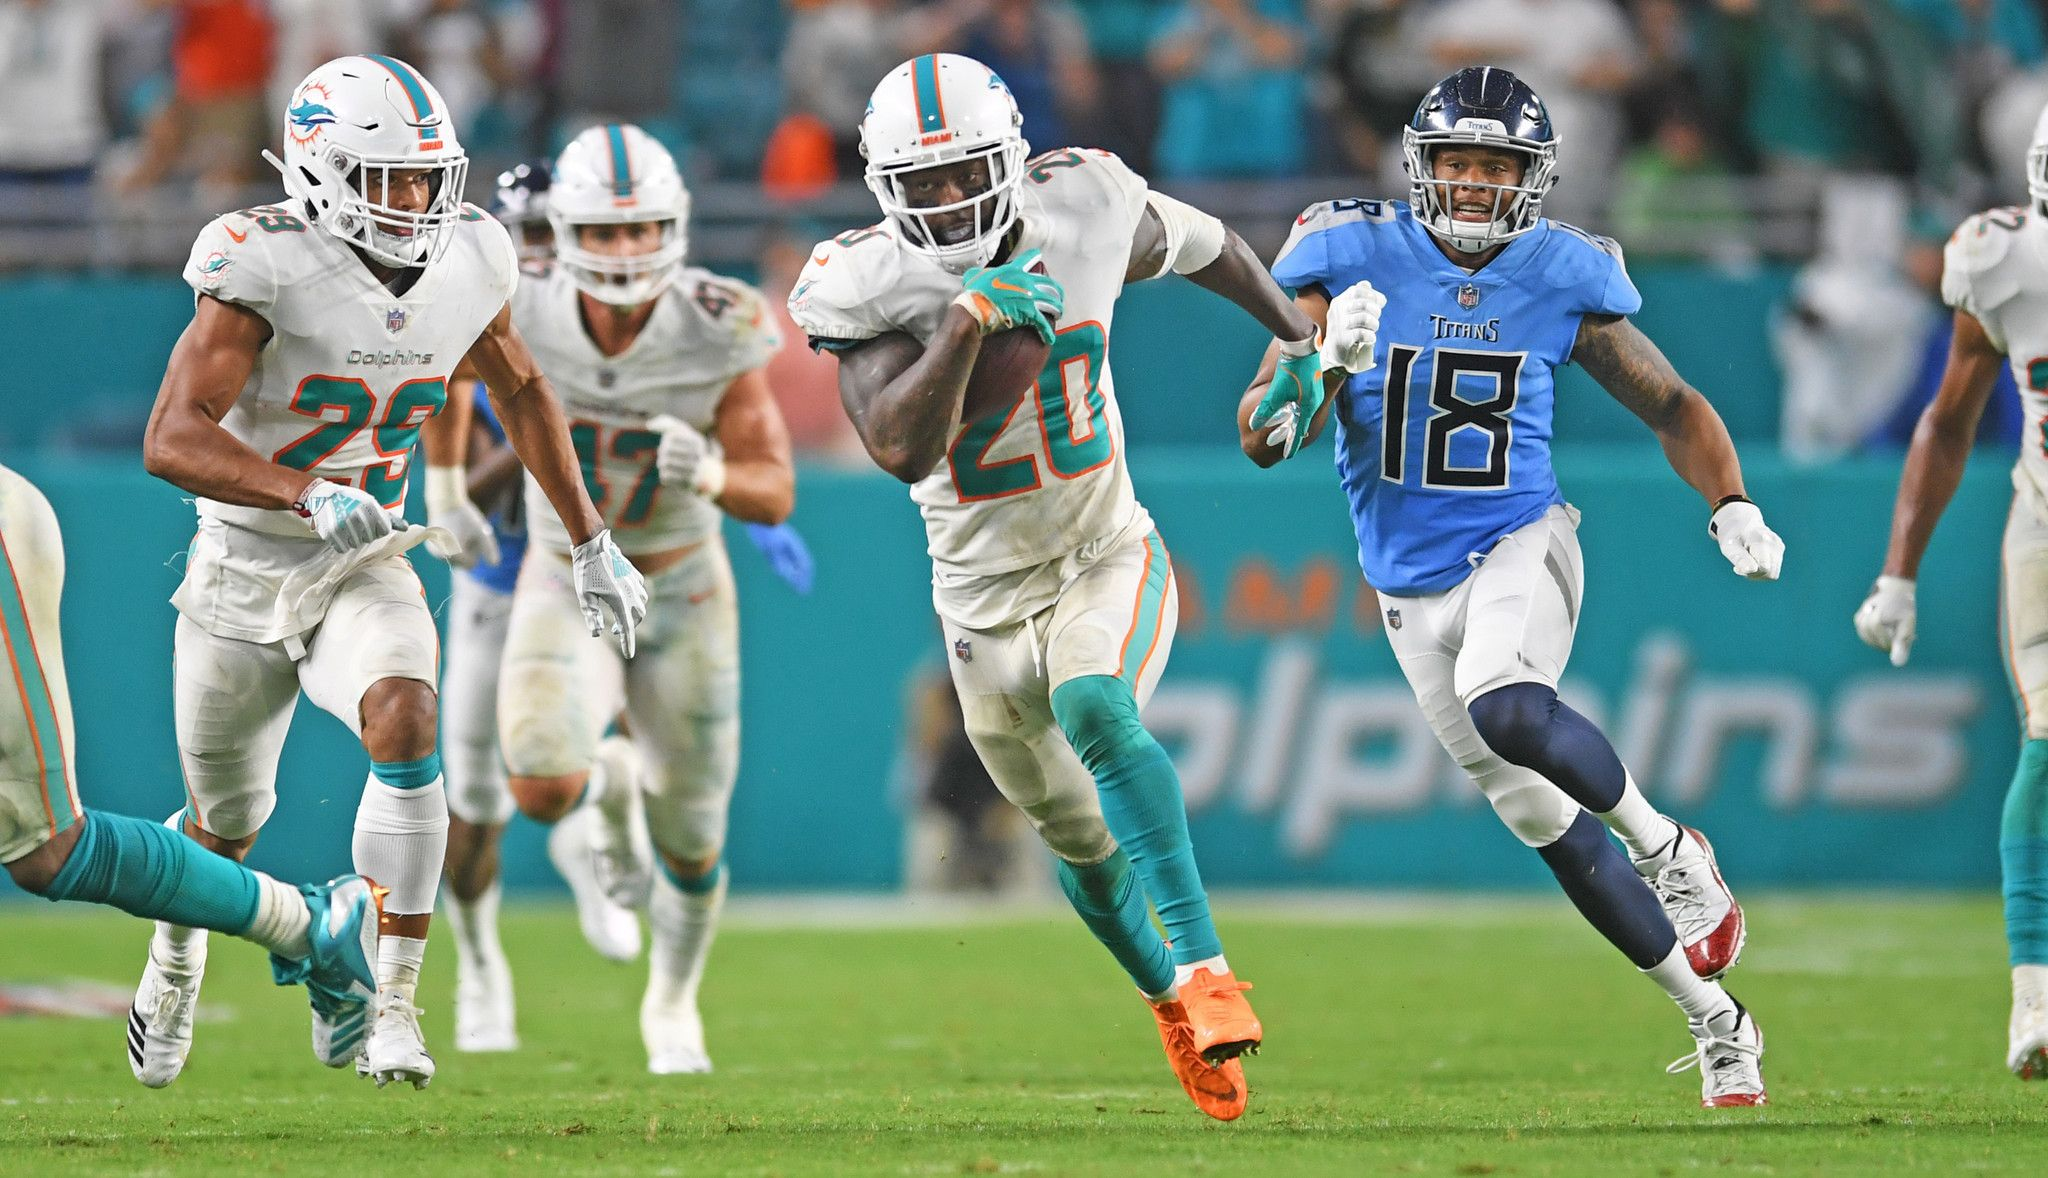 How to stream 2018 NFL football games for free South